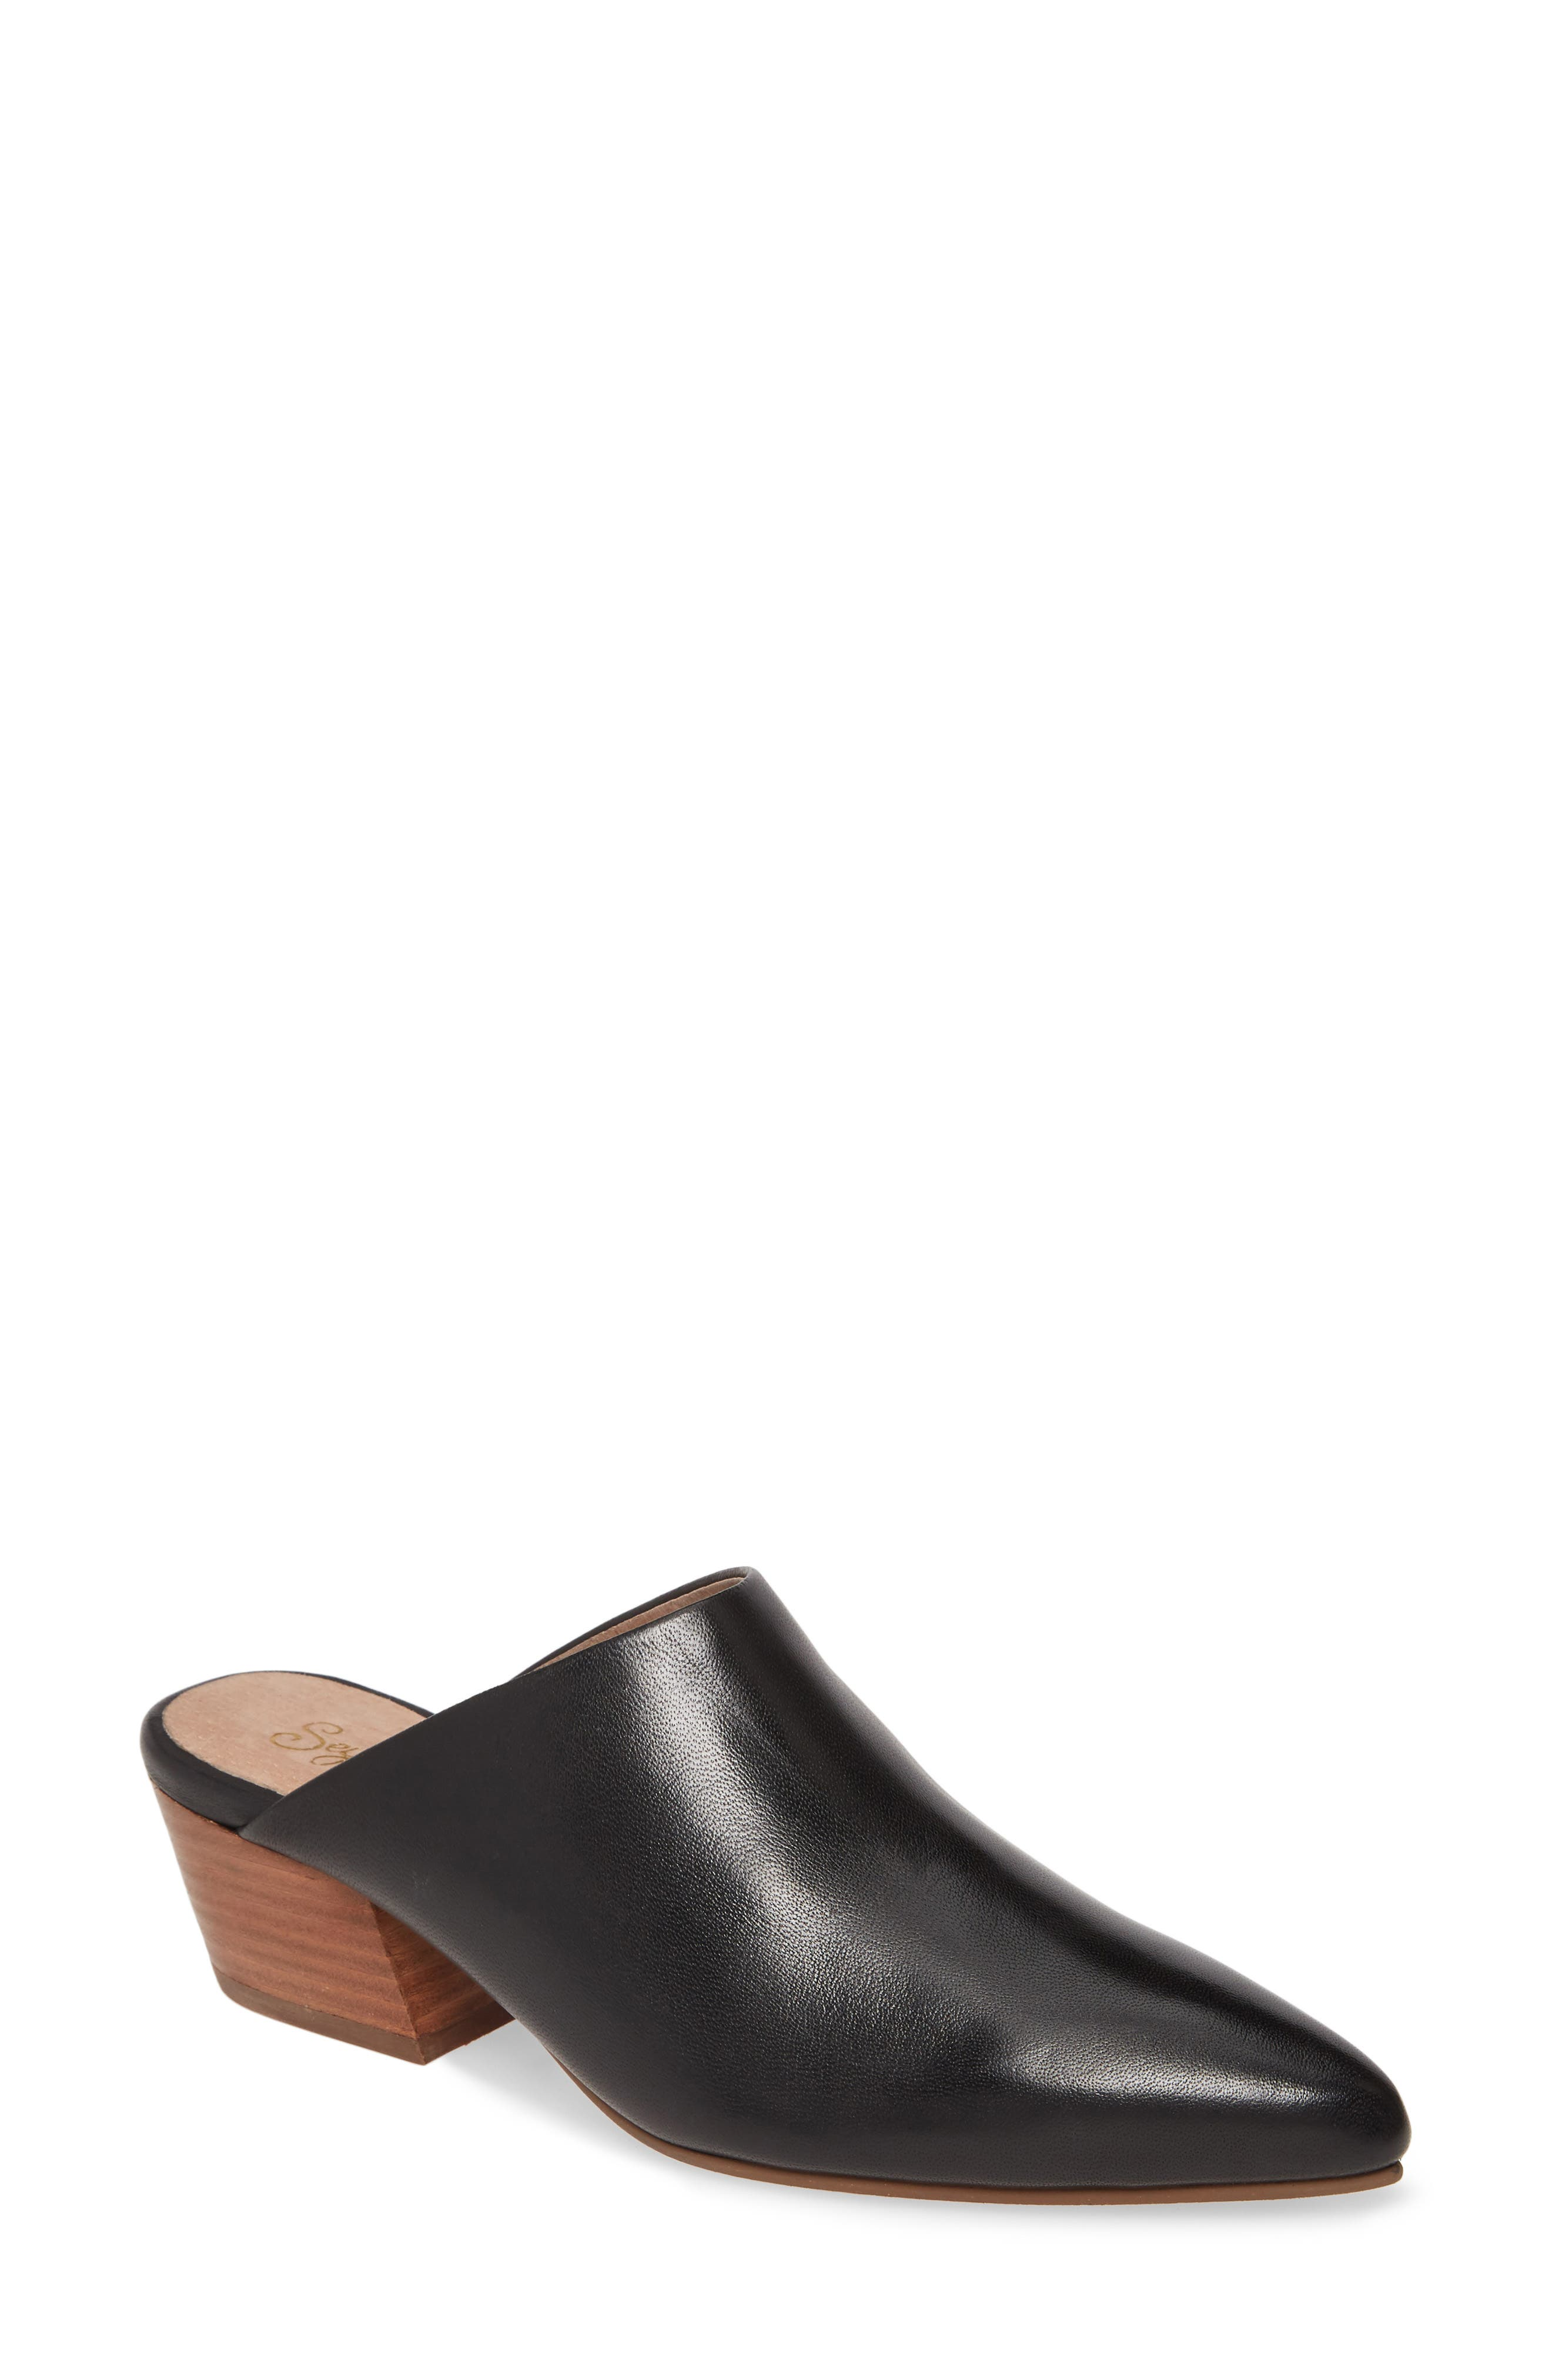 Image of Seychelles Rendezvous Pointed Toe Mule